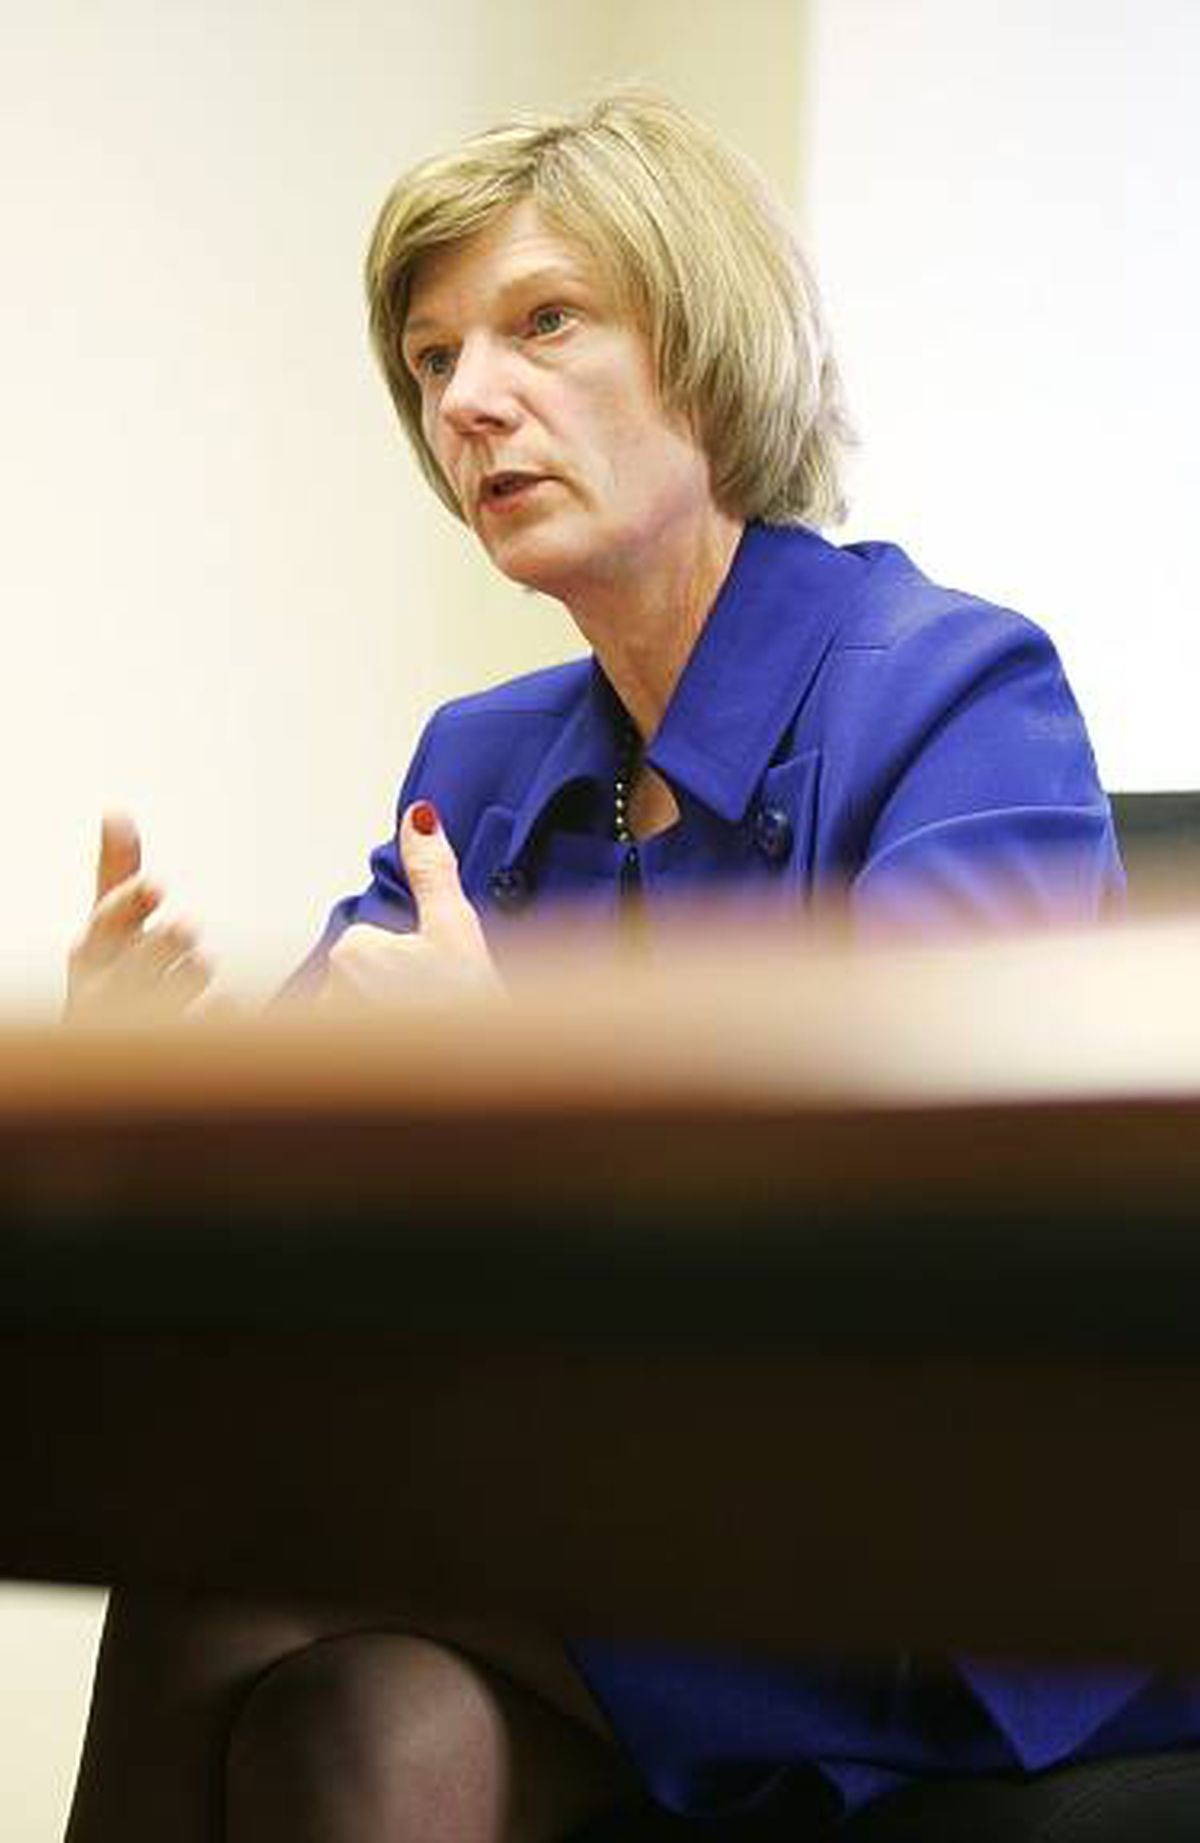 Sheridan Scott is the former Competition Bureau Commissioner who now works at Bennett Jones.